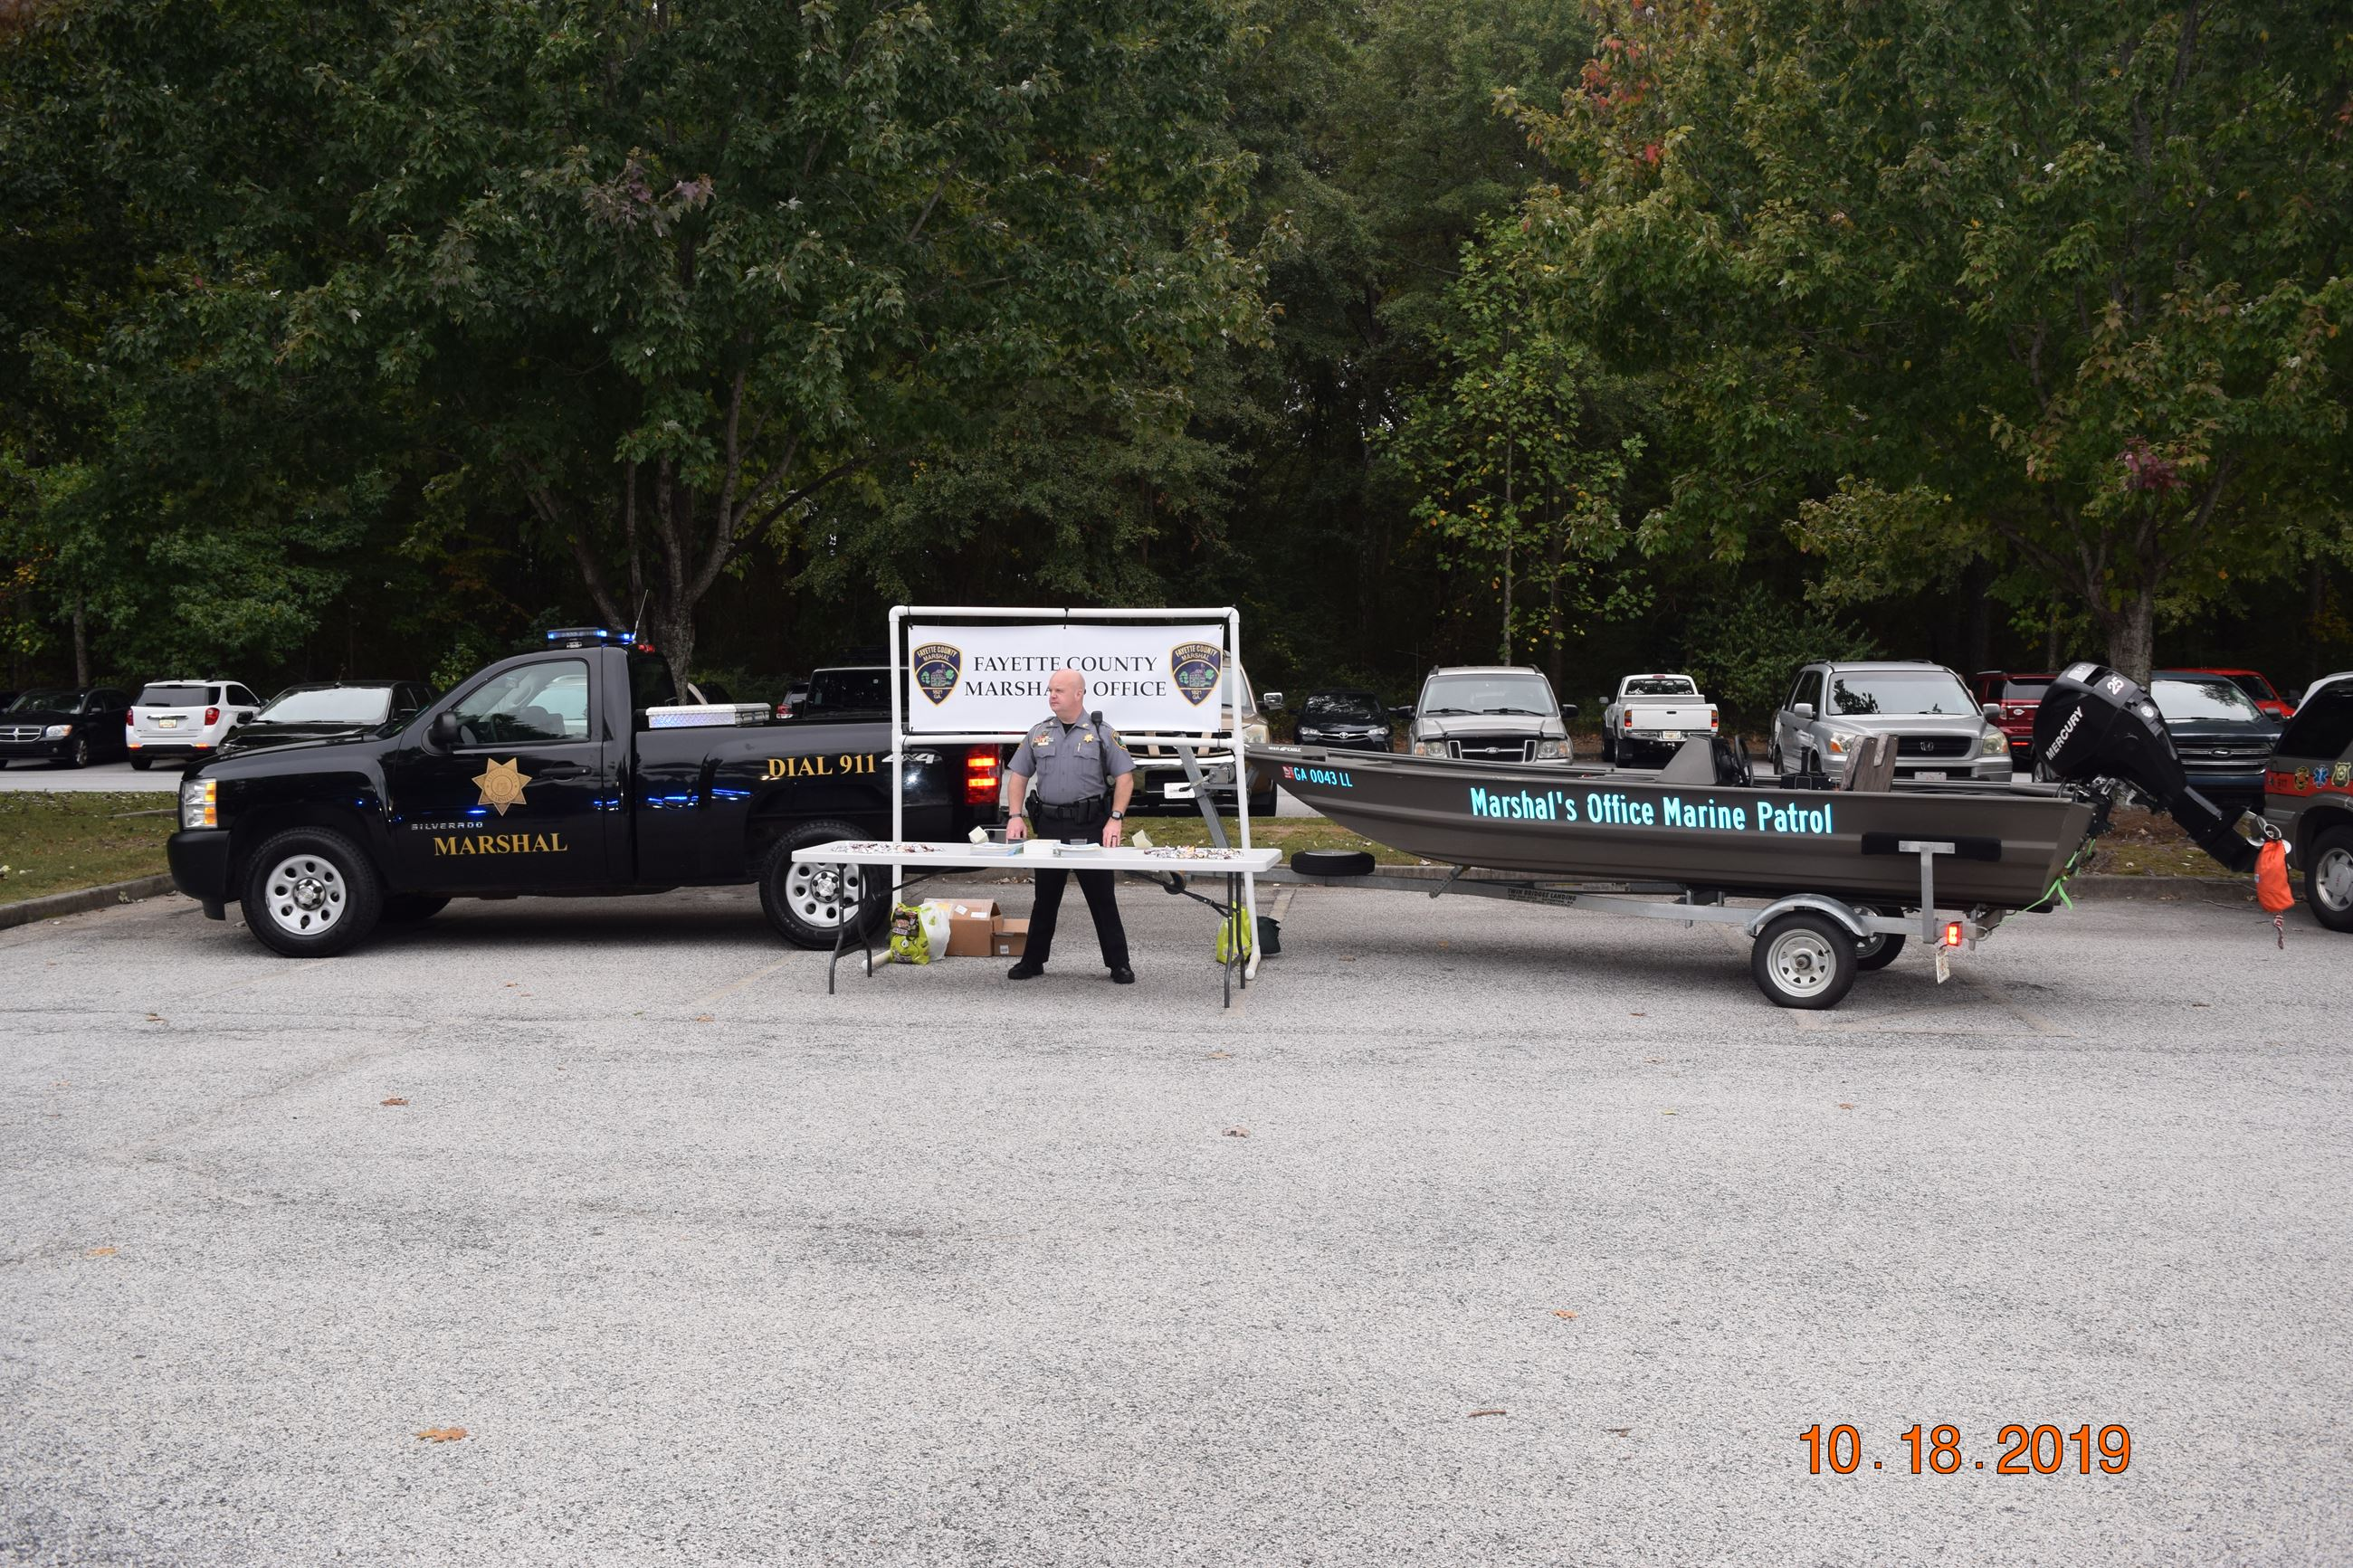 Fayette County Marshal's Office booth